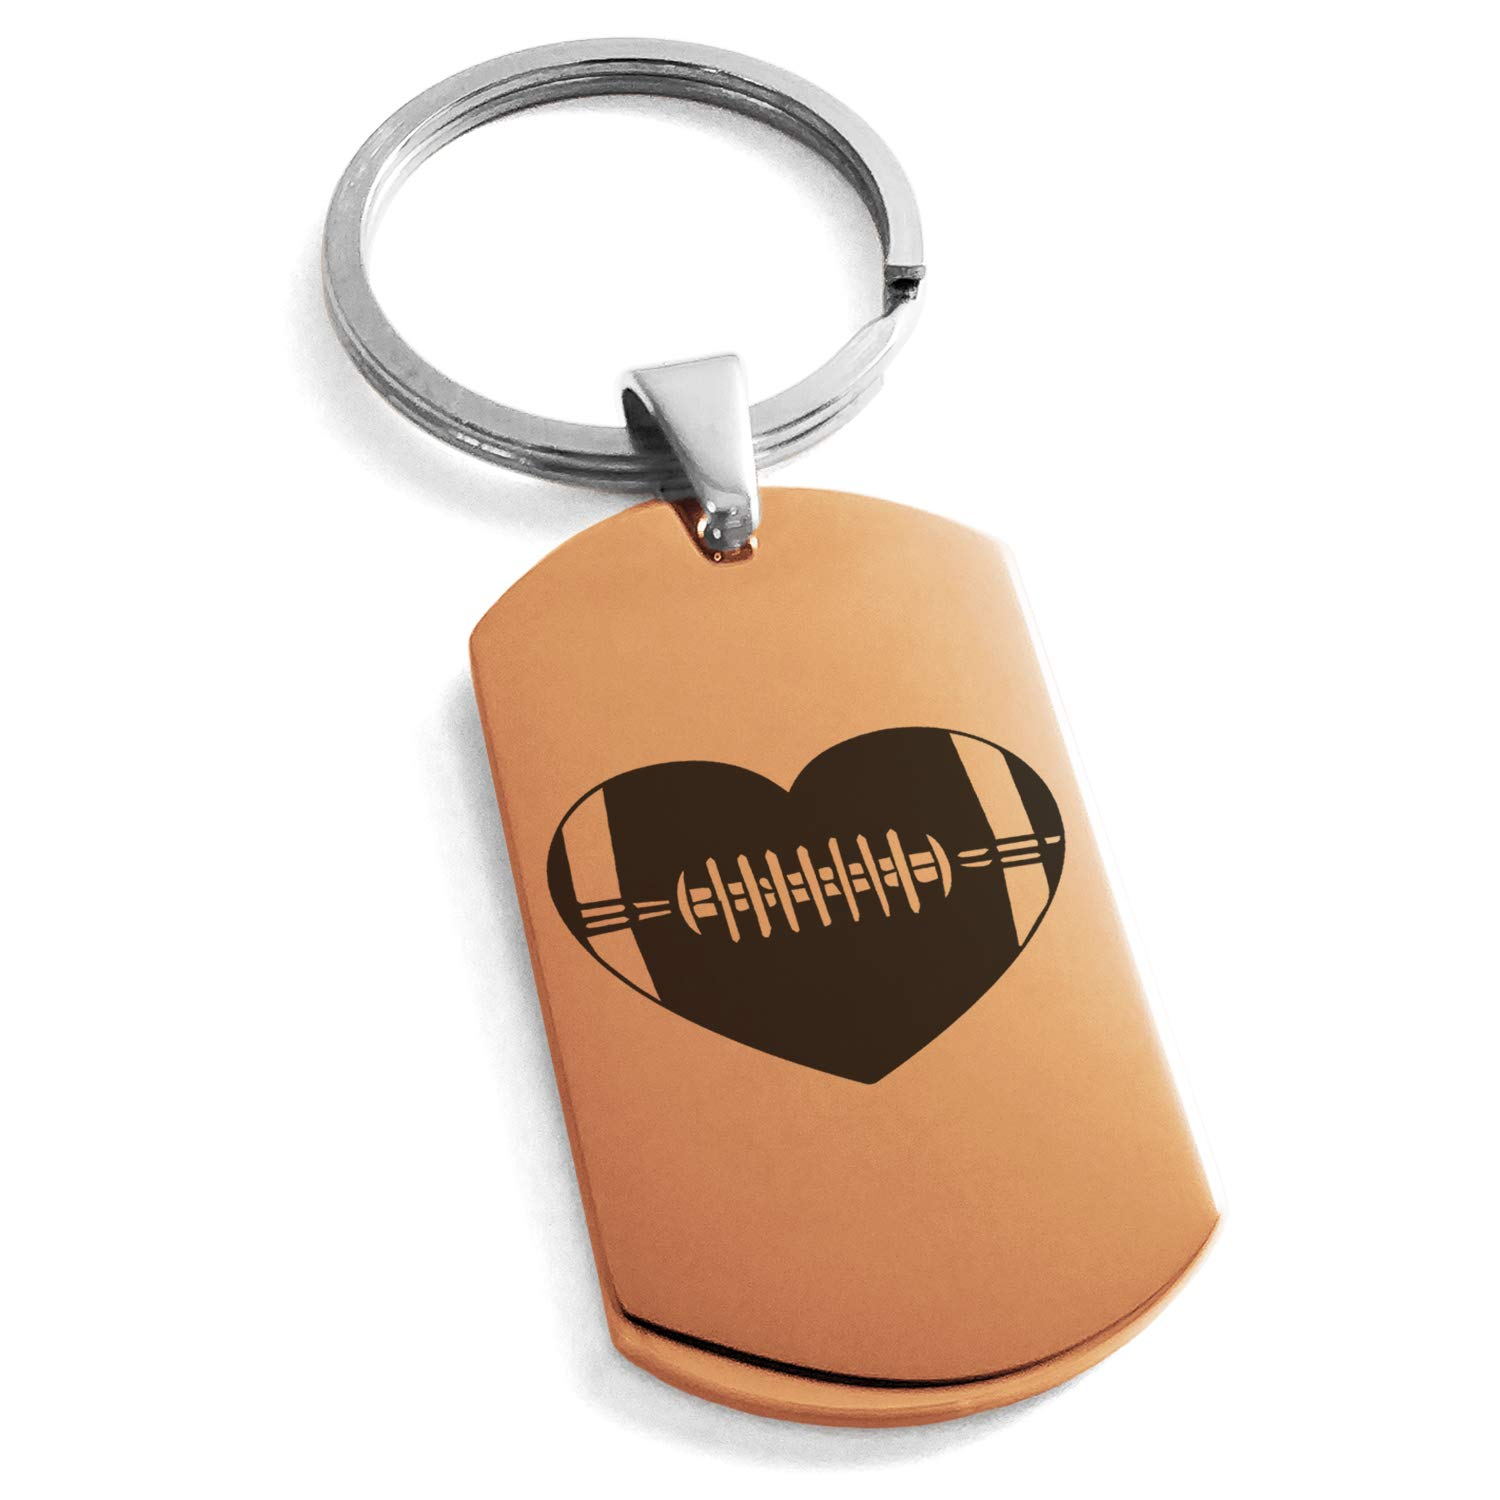 Tioneer Rose Gold Stainless Steel Love Football Heart Engraved Dog Tag Keychain Keyring